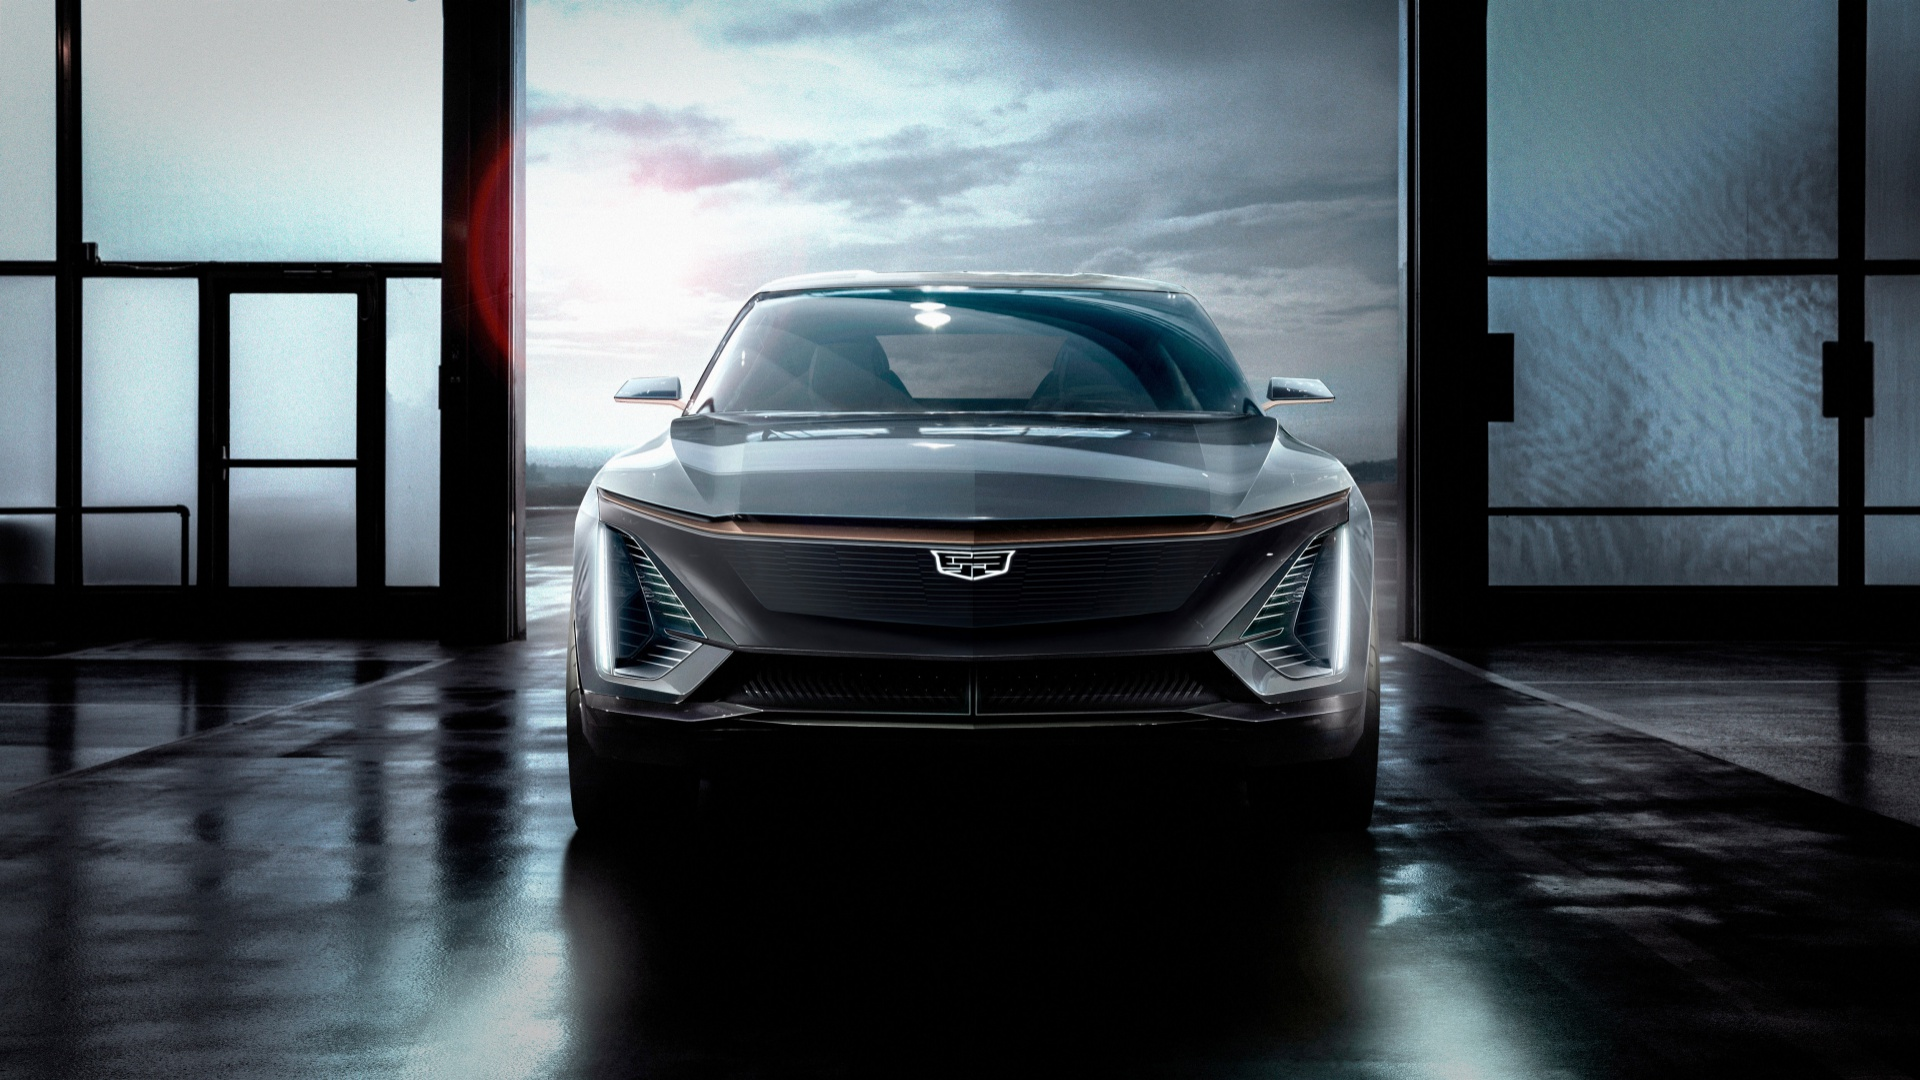 Cadillac Getting Into Electric Car Game And Shares Sneak Peek Pics